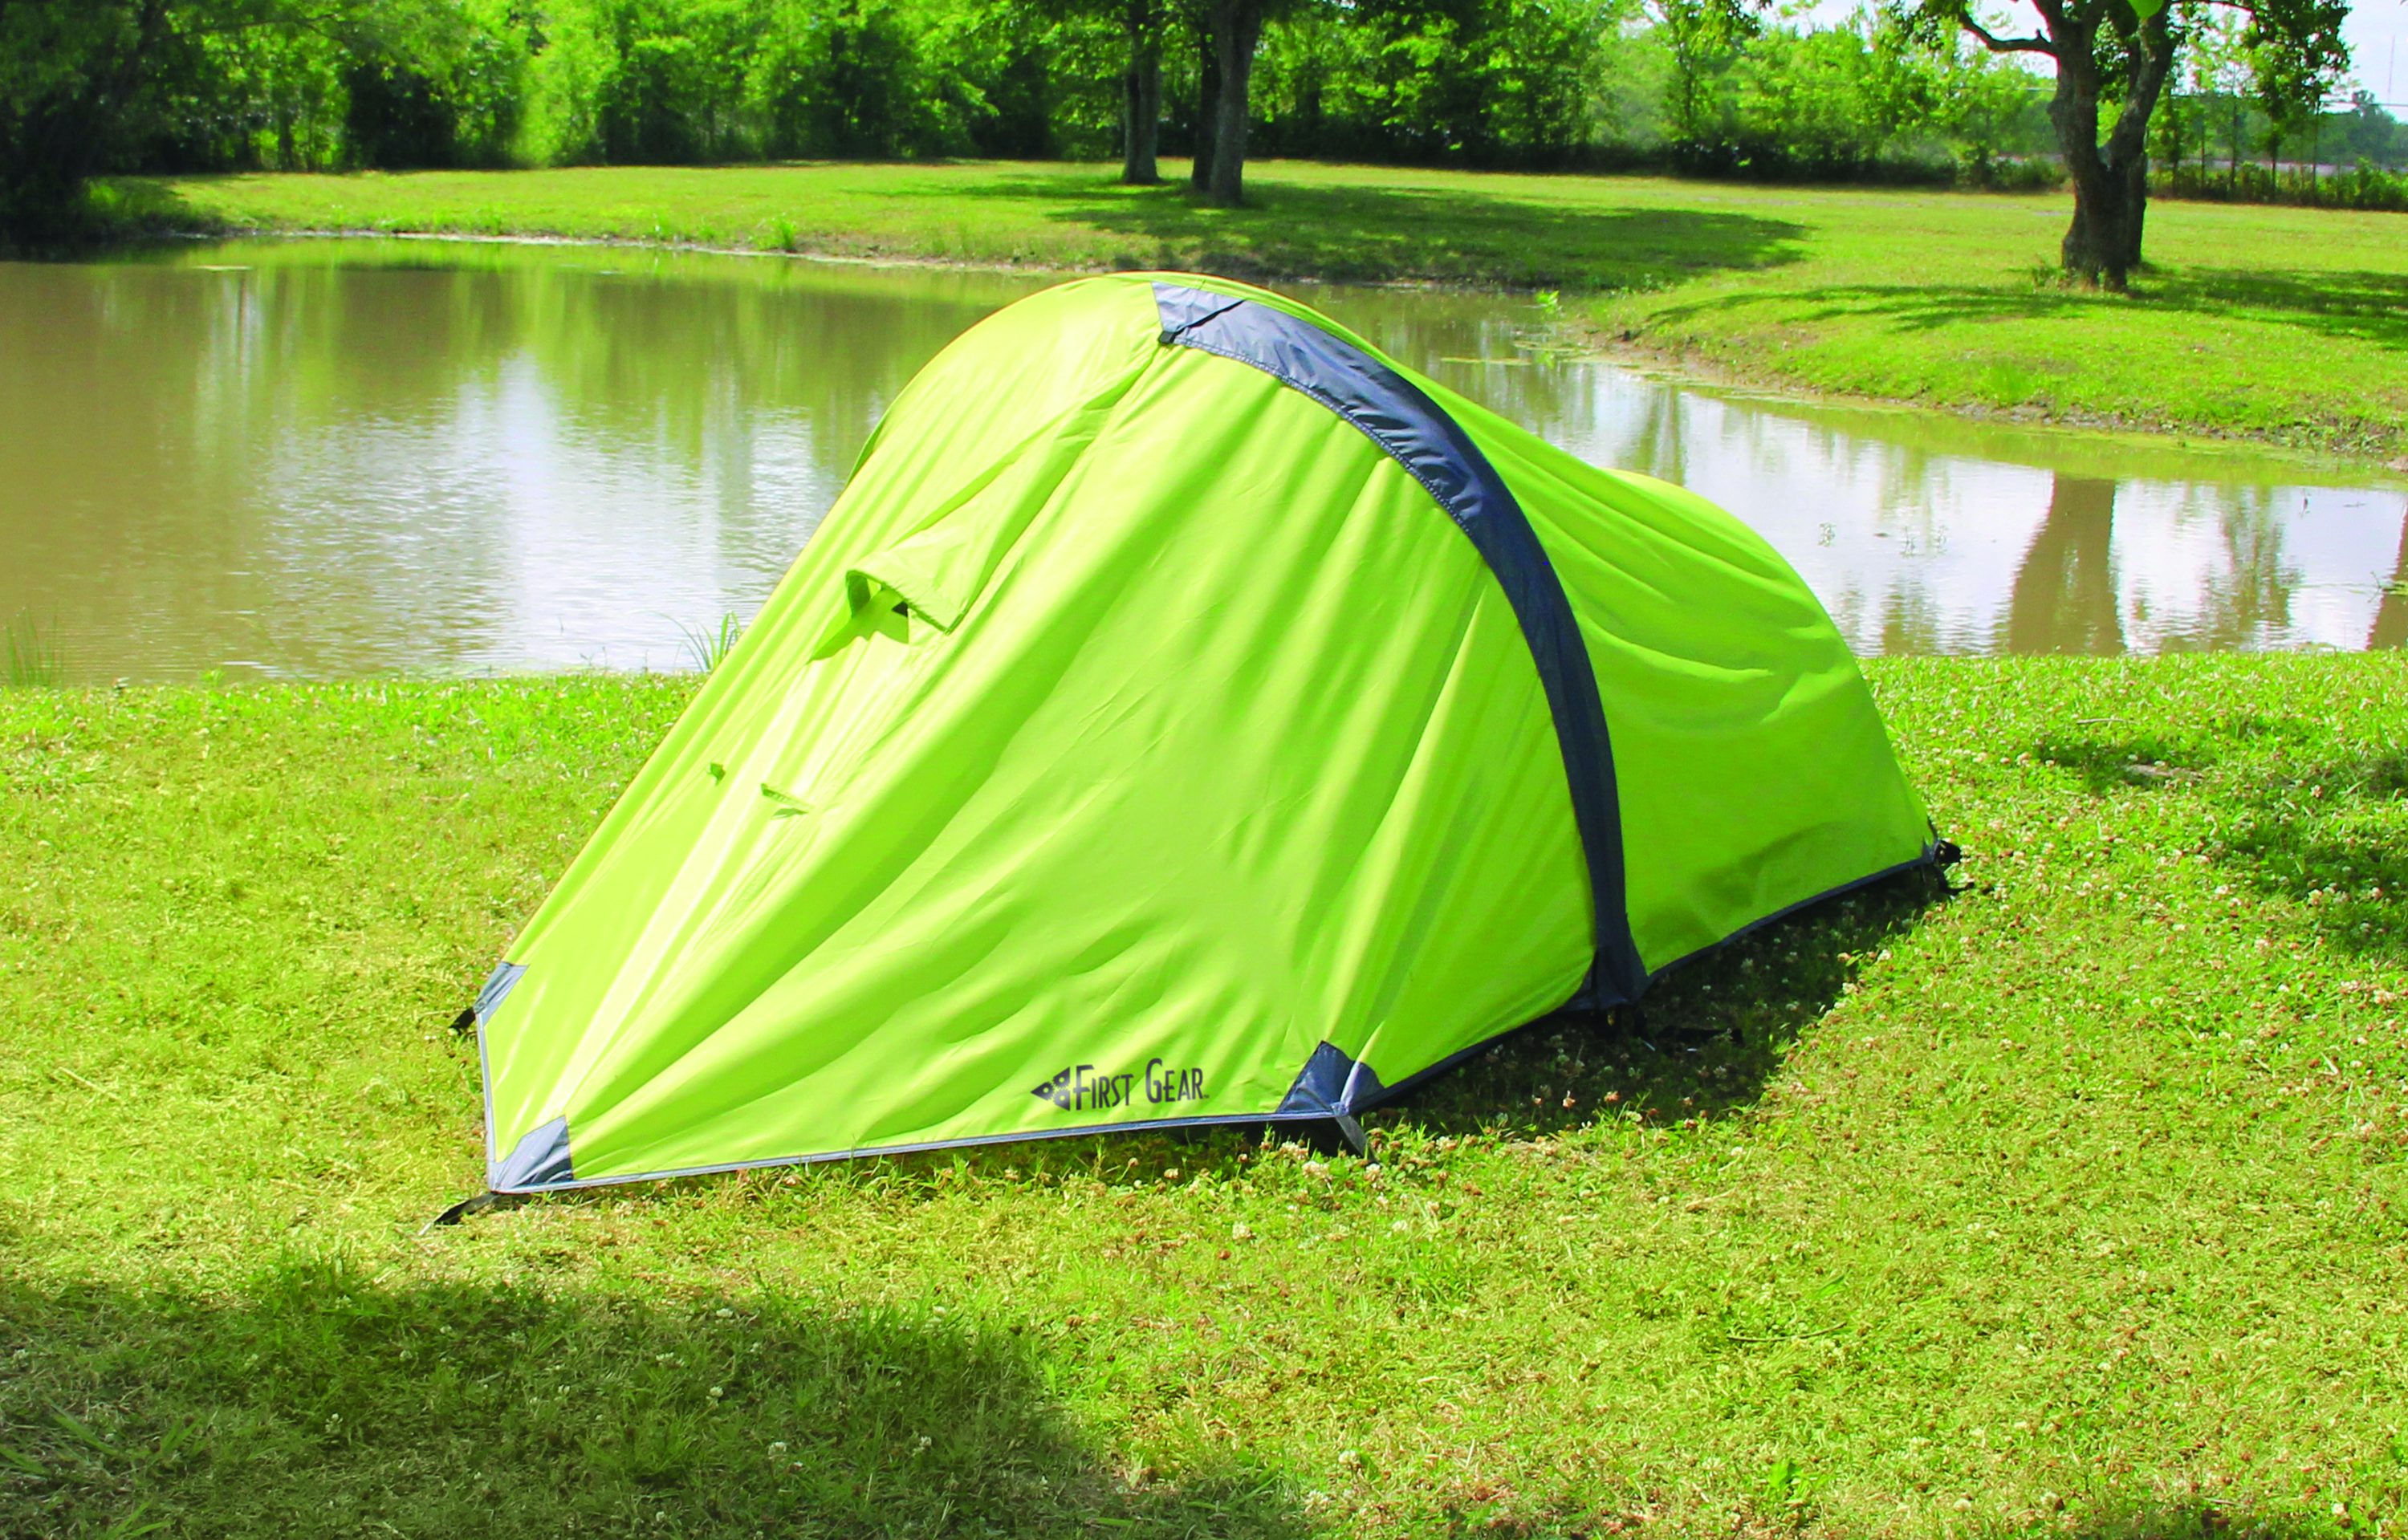 Texsport Cliff Hanger 2 Three Season Backpacking Tent & Cliff Hanger 2 Three Season Backpacking Tent